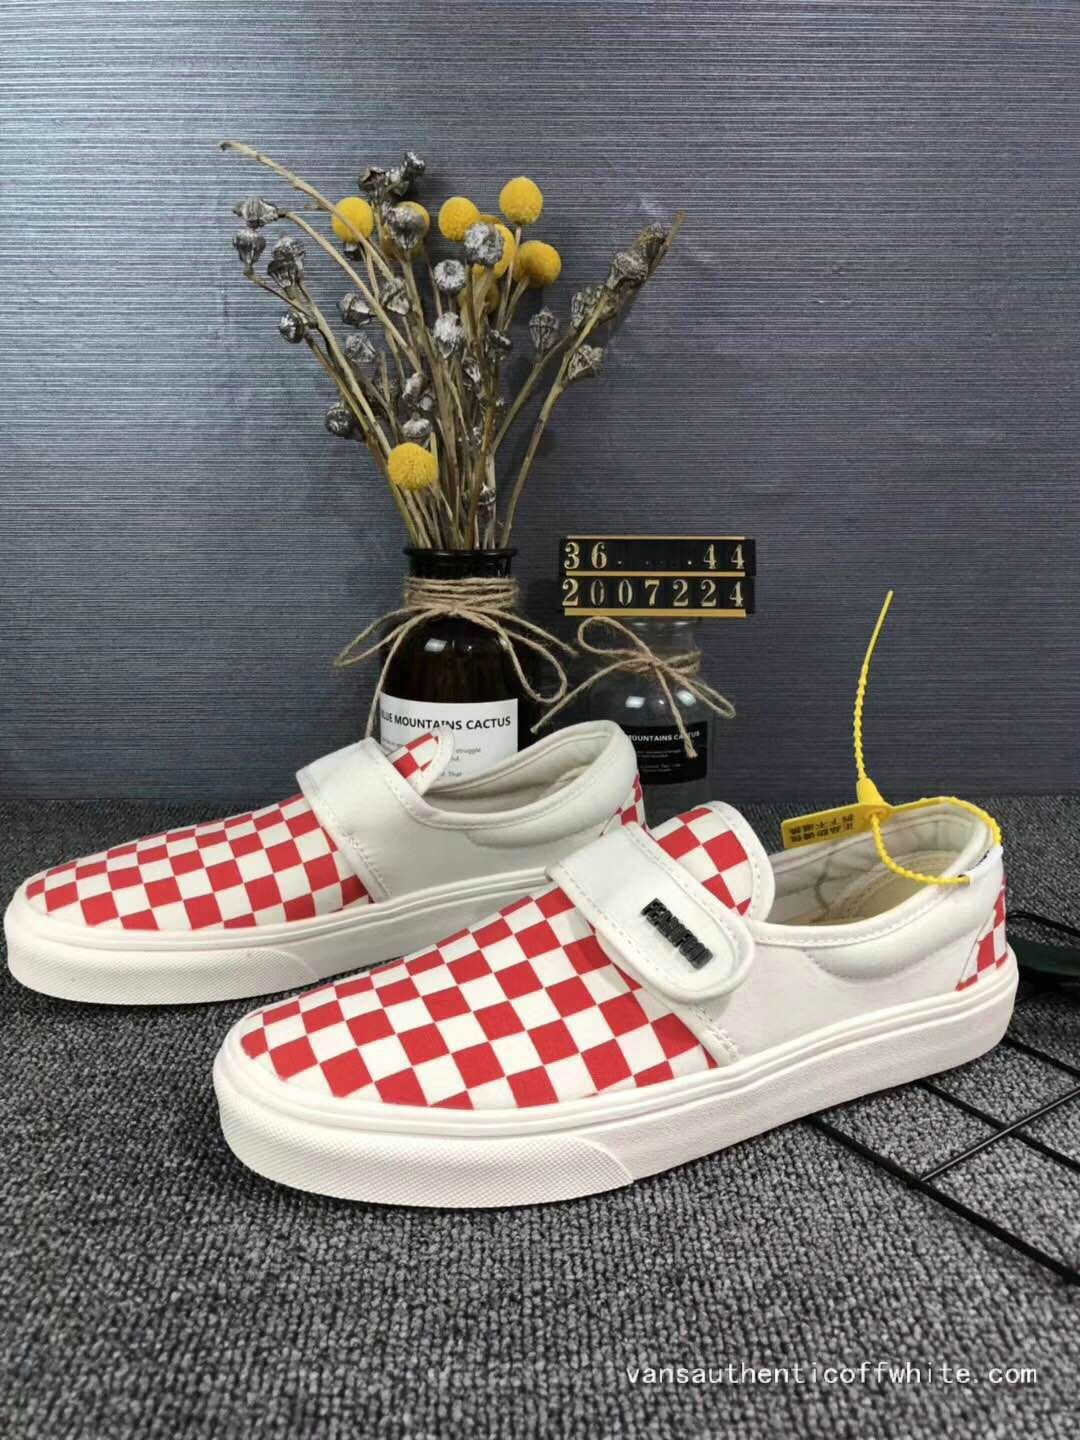 06383dbc196 Vans Slip On 47 DX YC24 Red White Checkerboard Skate Shoe For Sale ...